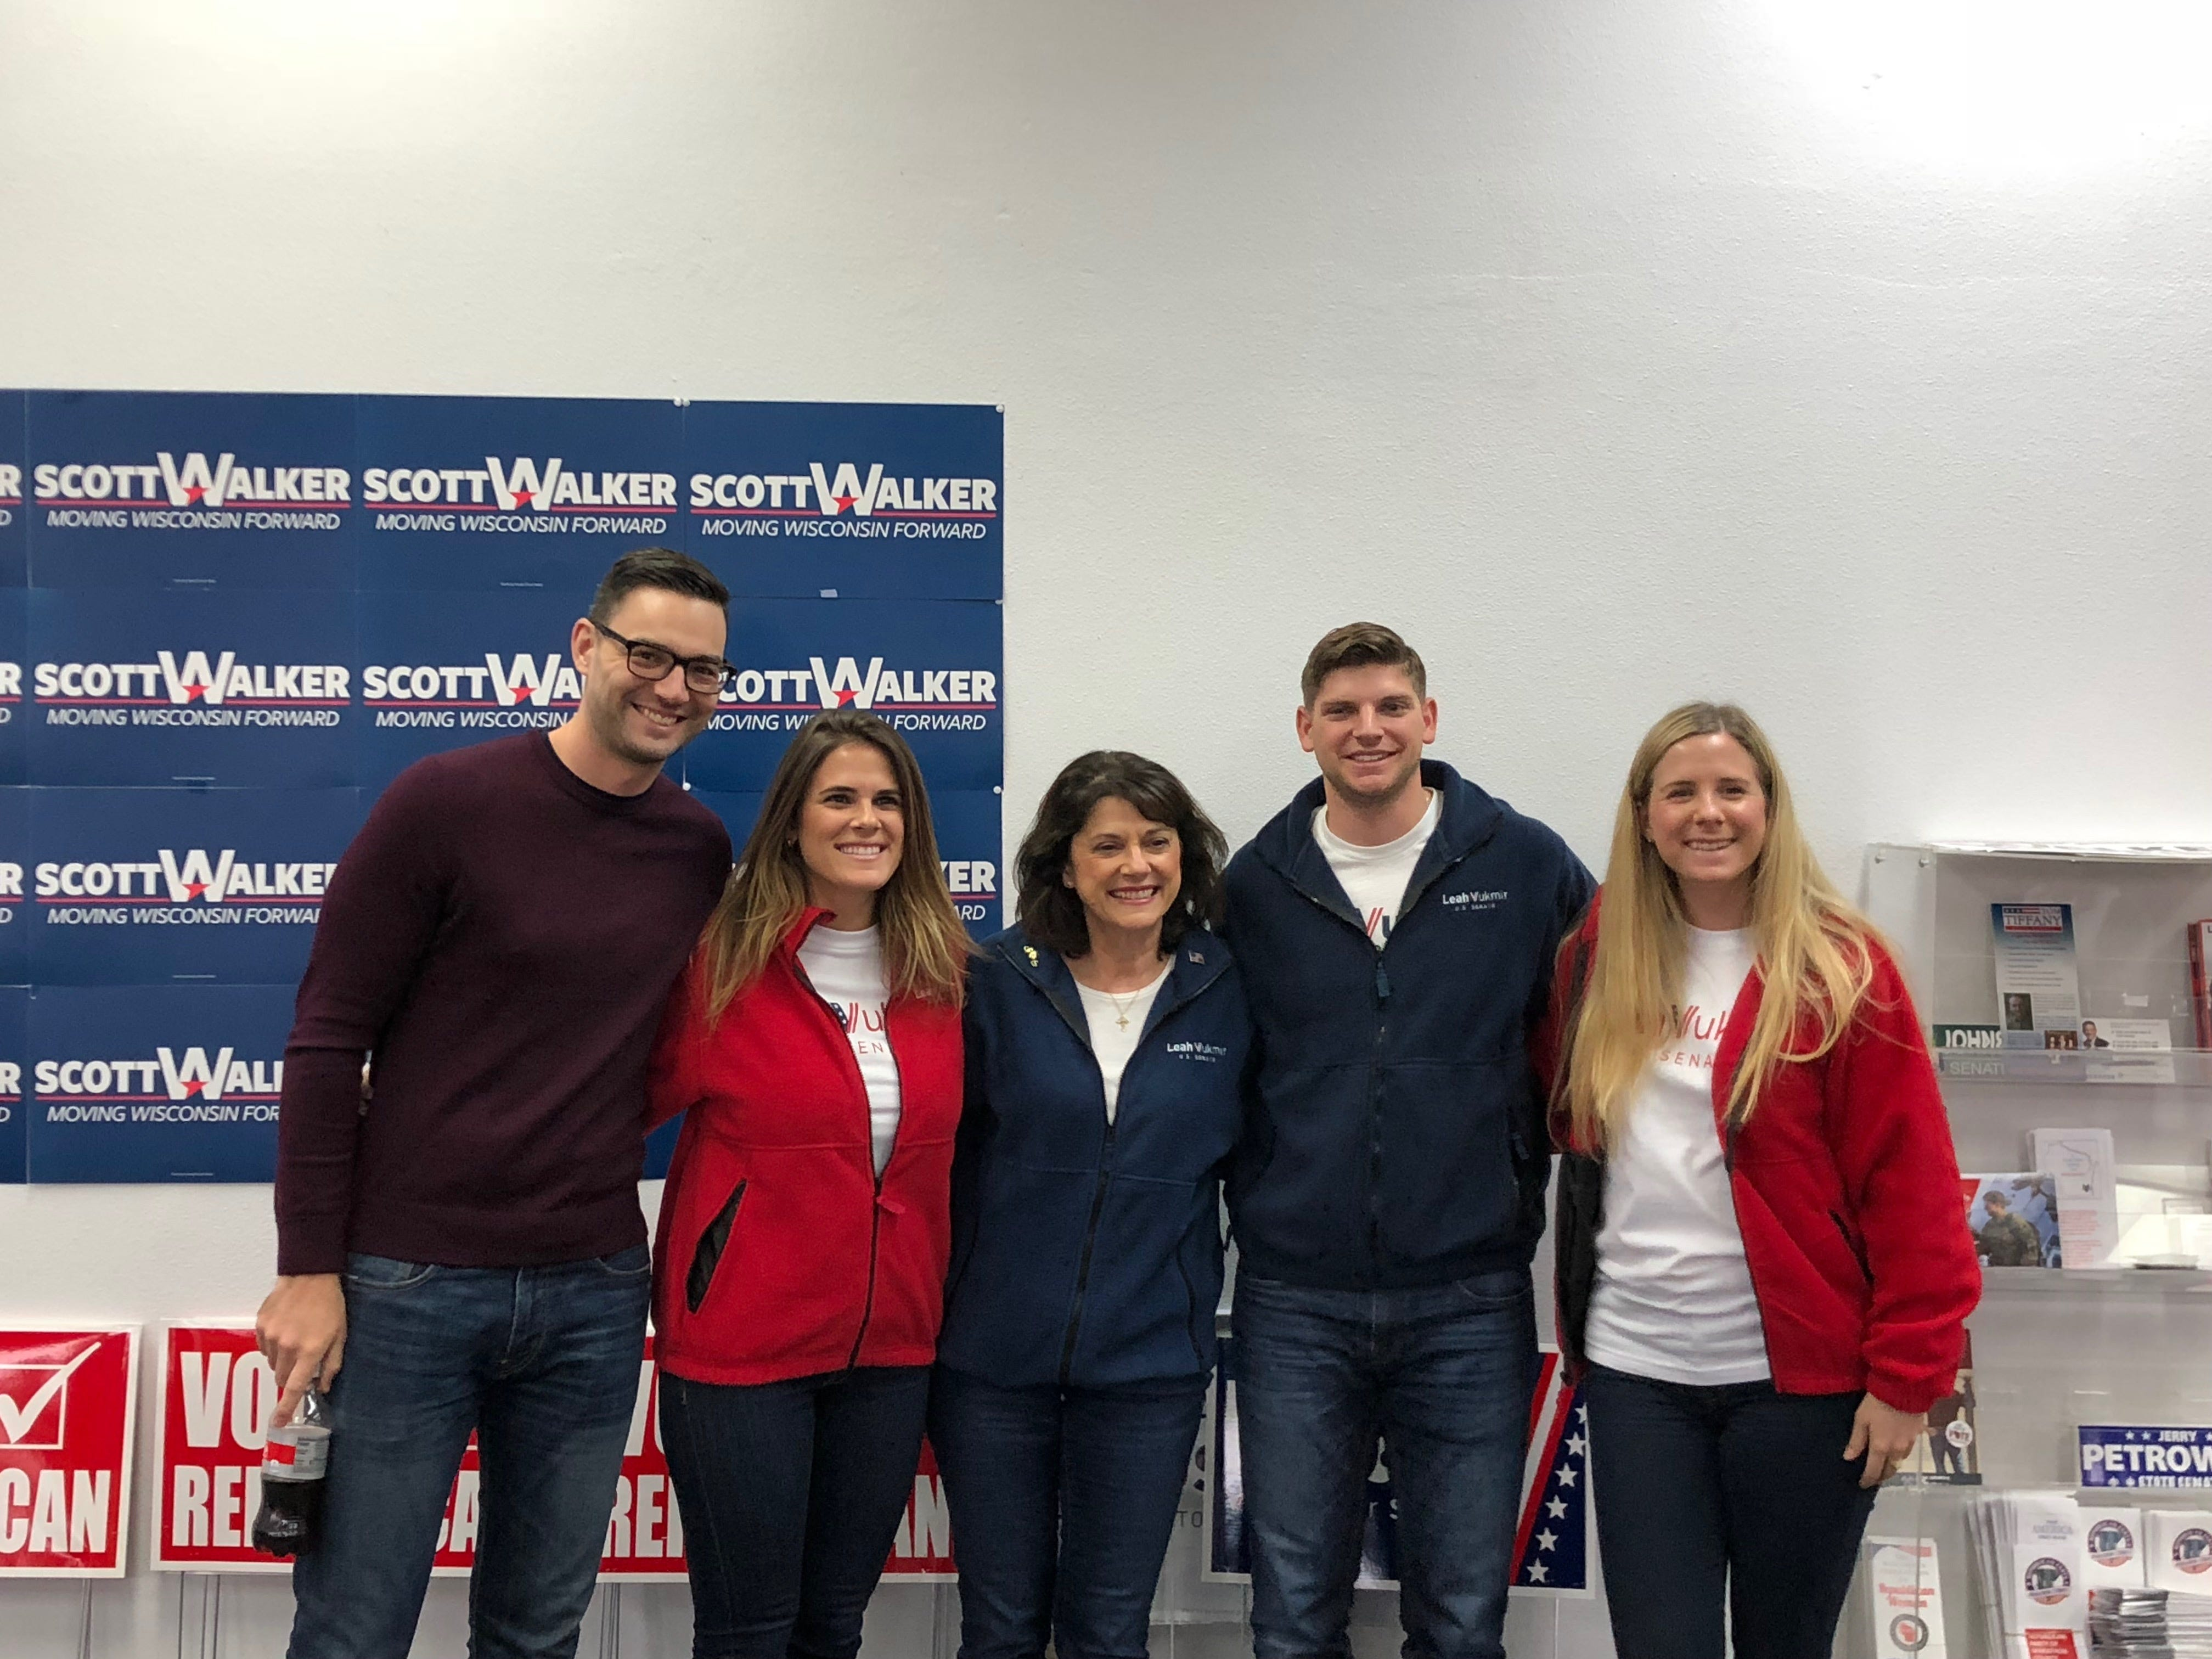 U.S. Senate candidate Leah Vukmir smiles alongside her son, daughter and their significant others on Nov. 5, 2018,  in Weston.